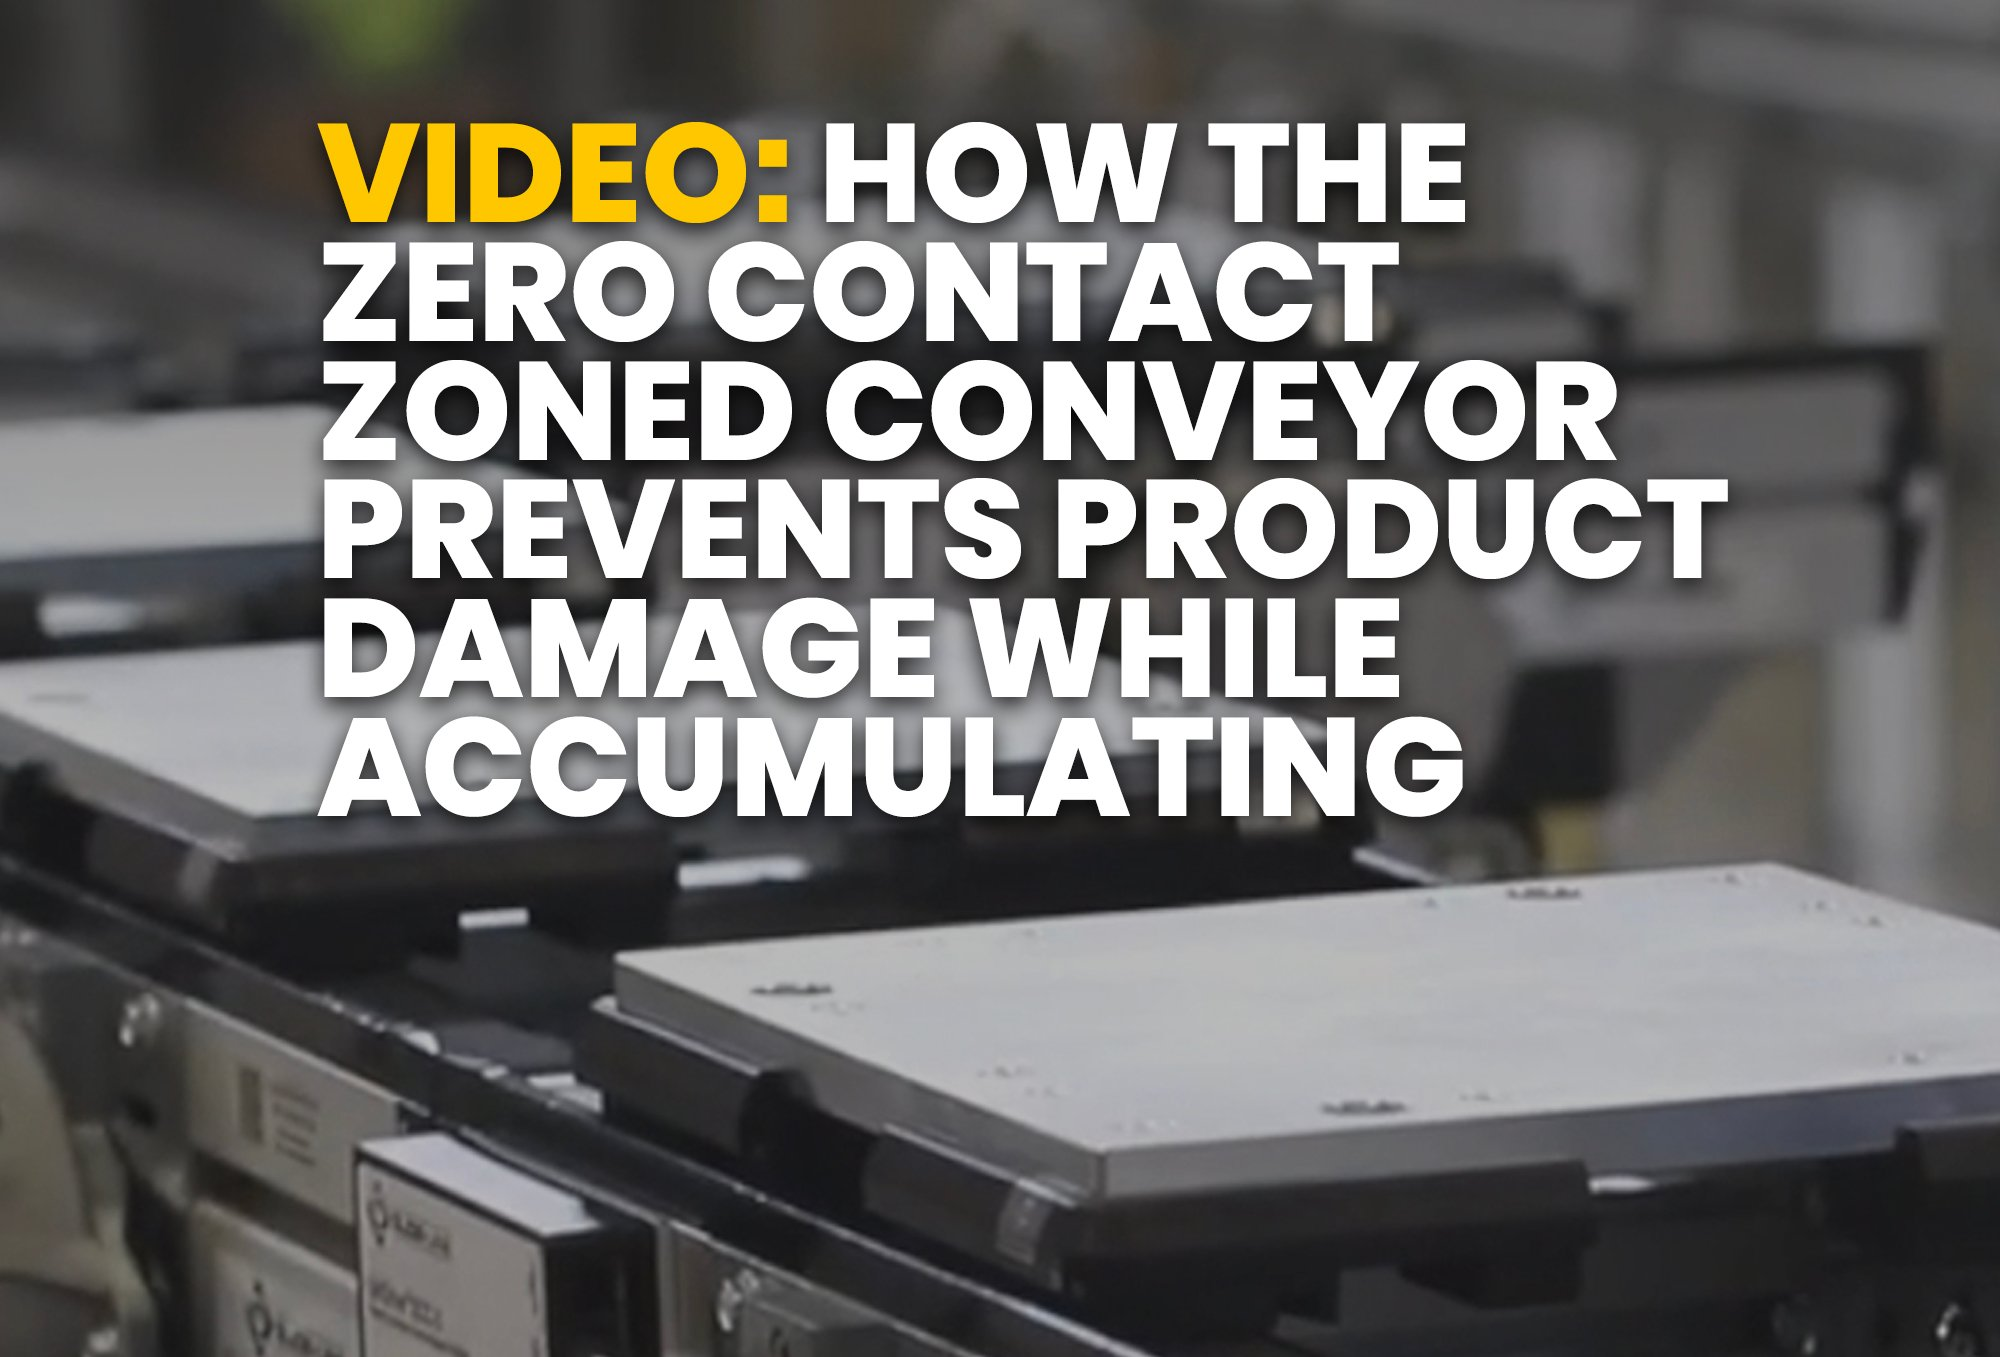 How the Zero Contact Zoned Conveyor Prevents Product Damage While Accumulating